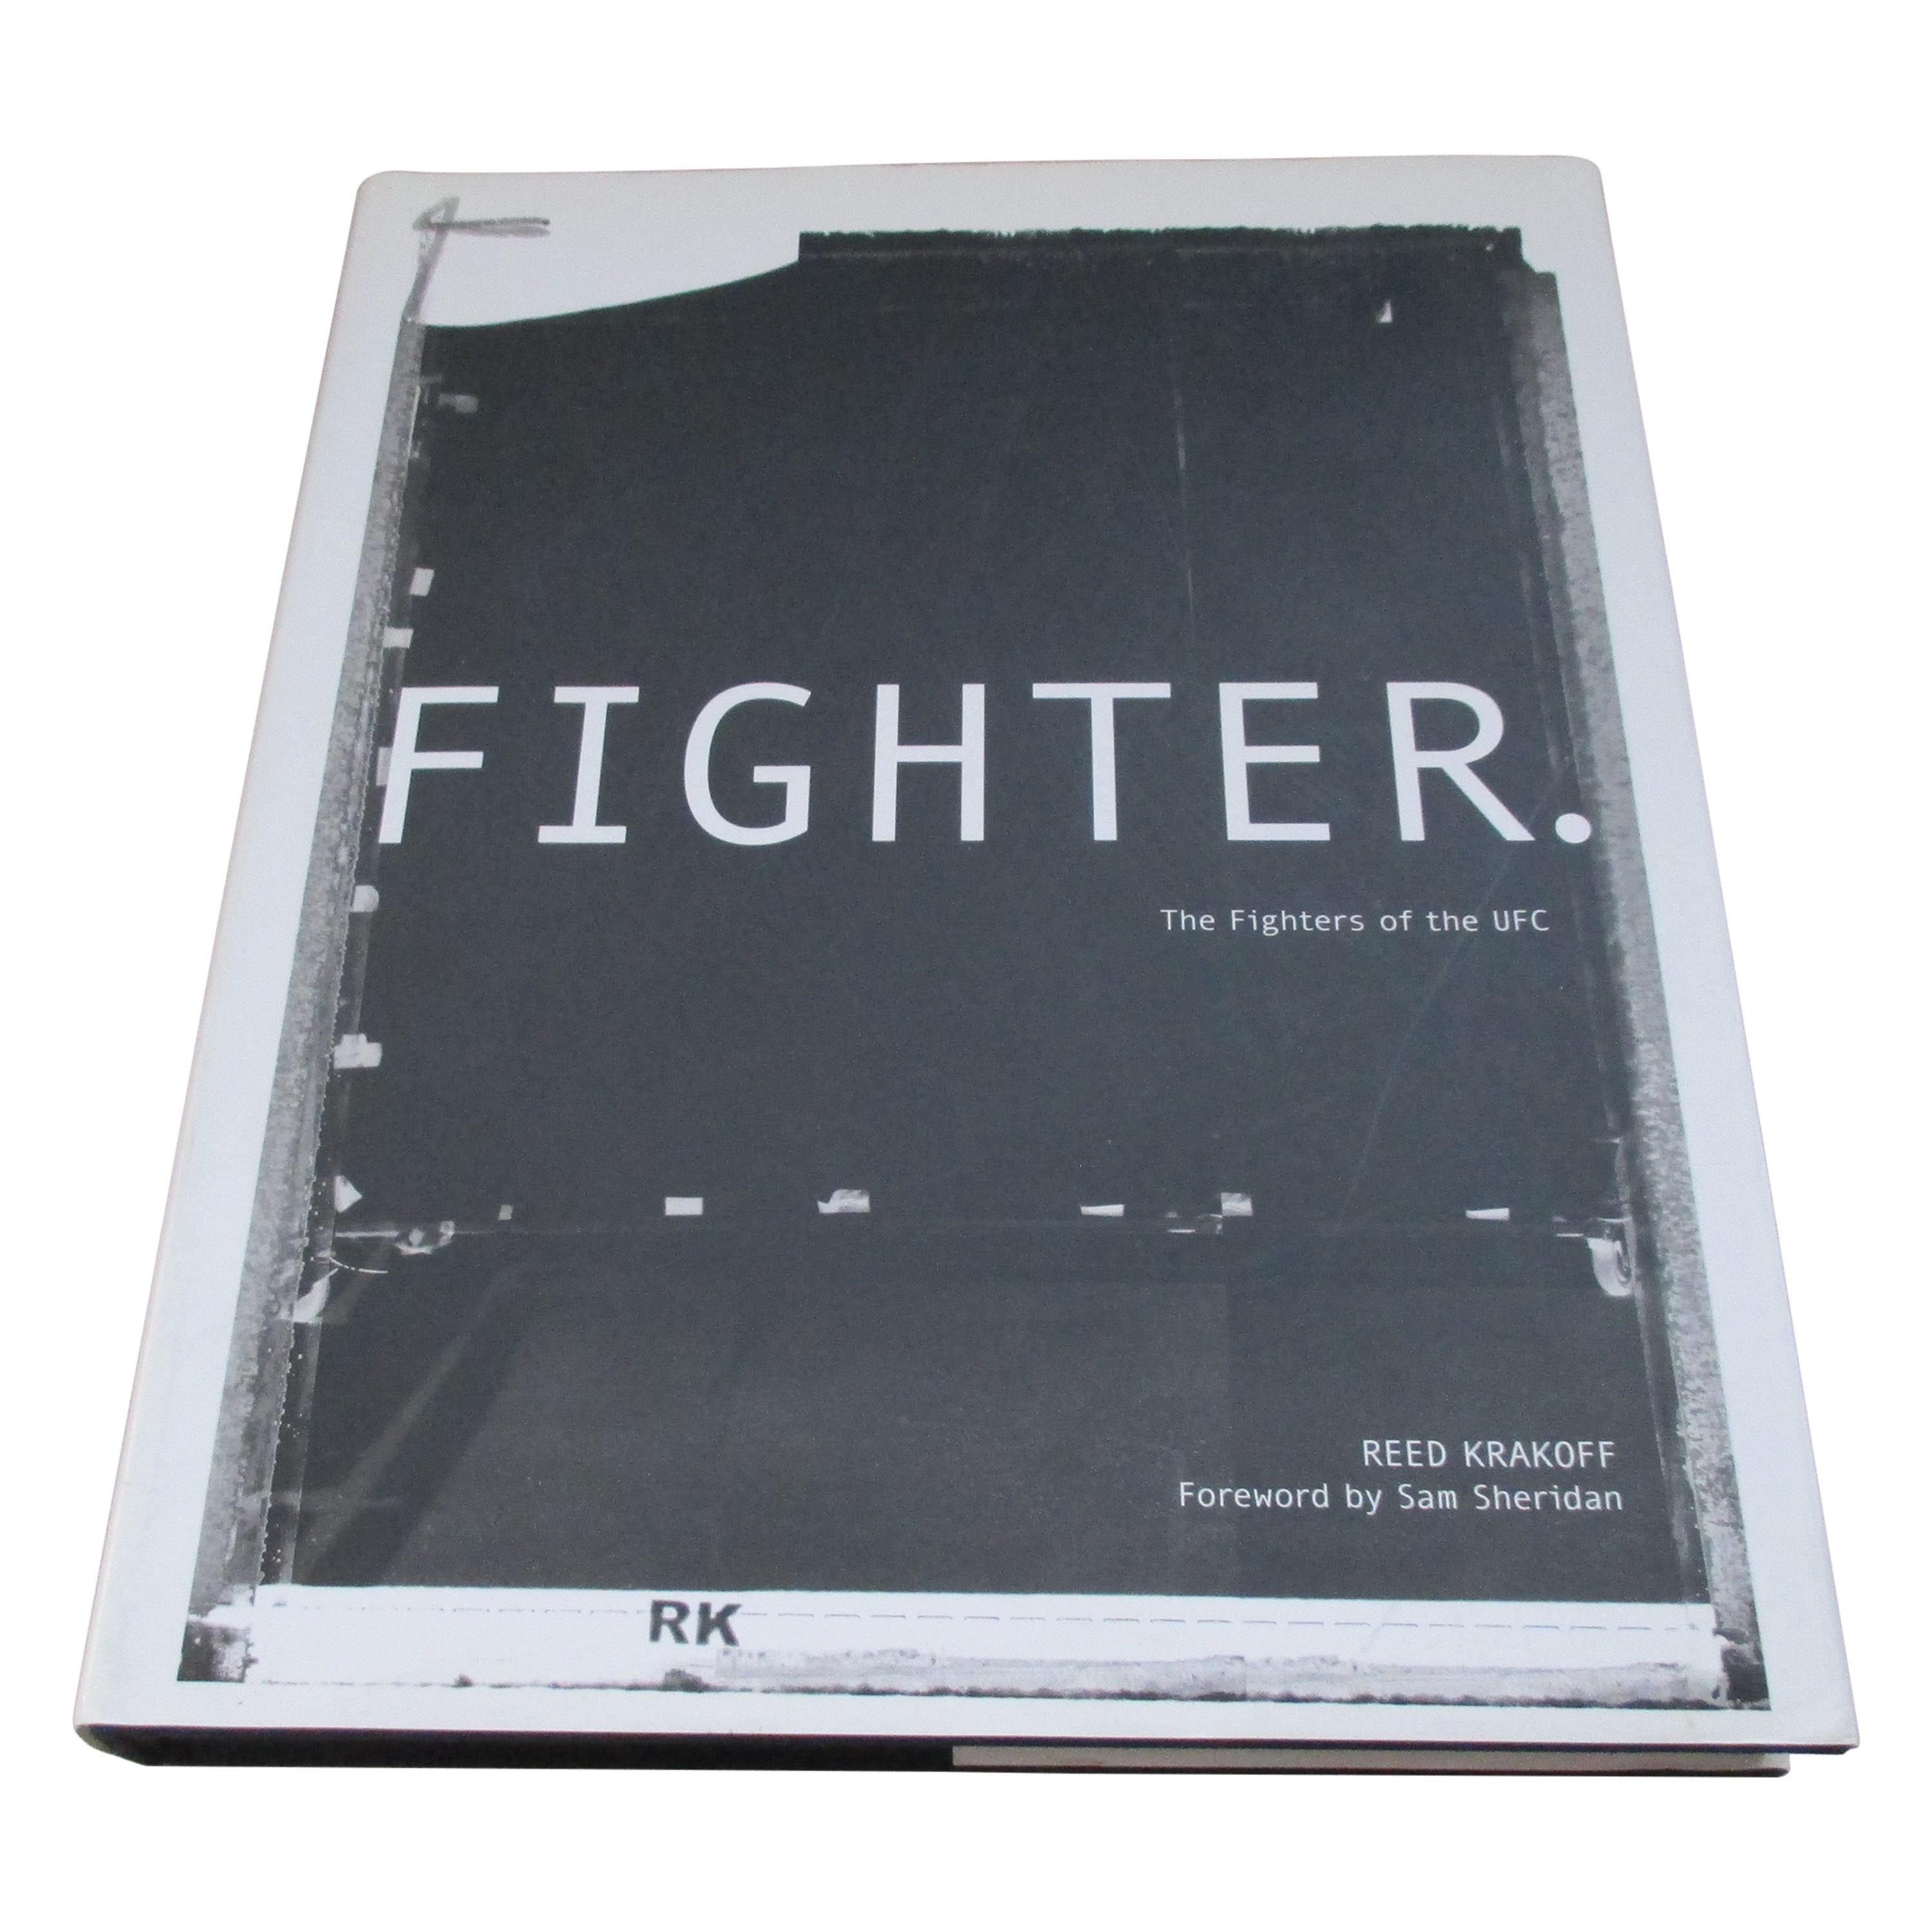 Fighter Hardcover Coffee Table Book